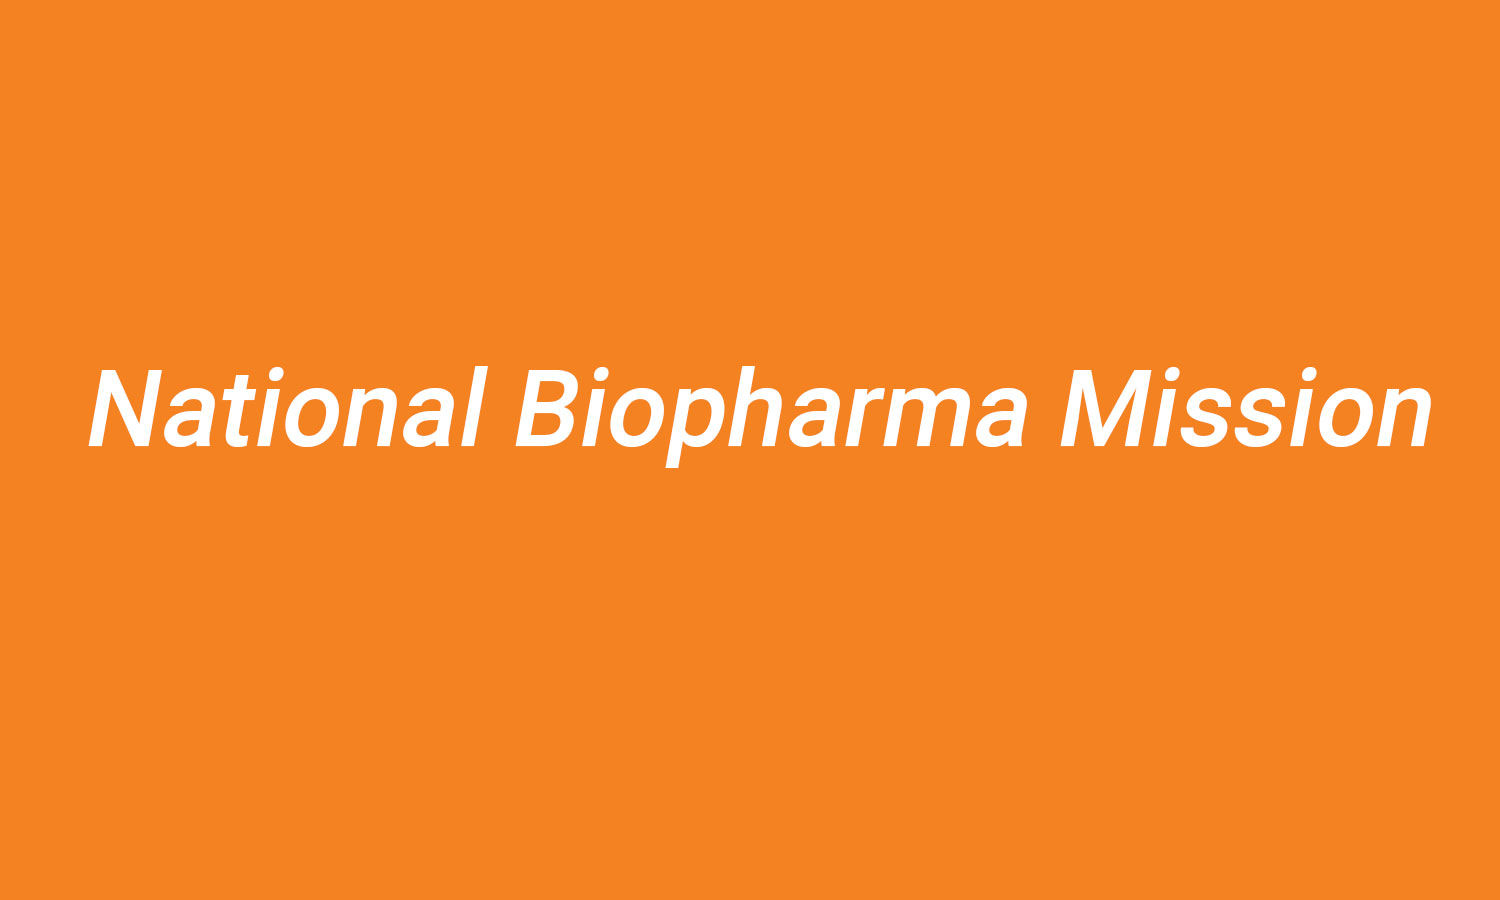 Accelerating Biopharmaceutical development: Dr Harsh Vardhan informs parliament about National Biopharma Mission